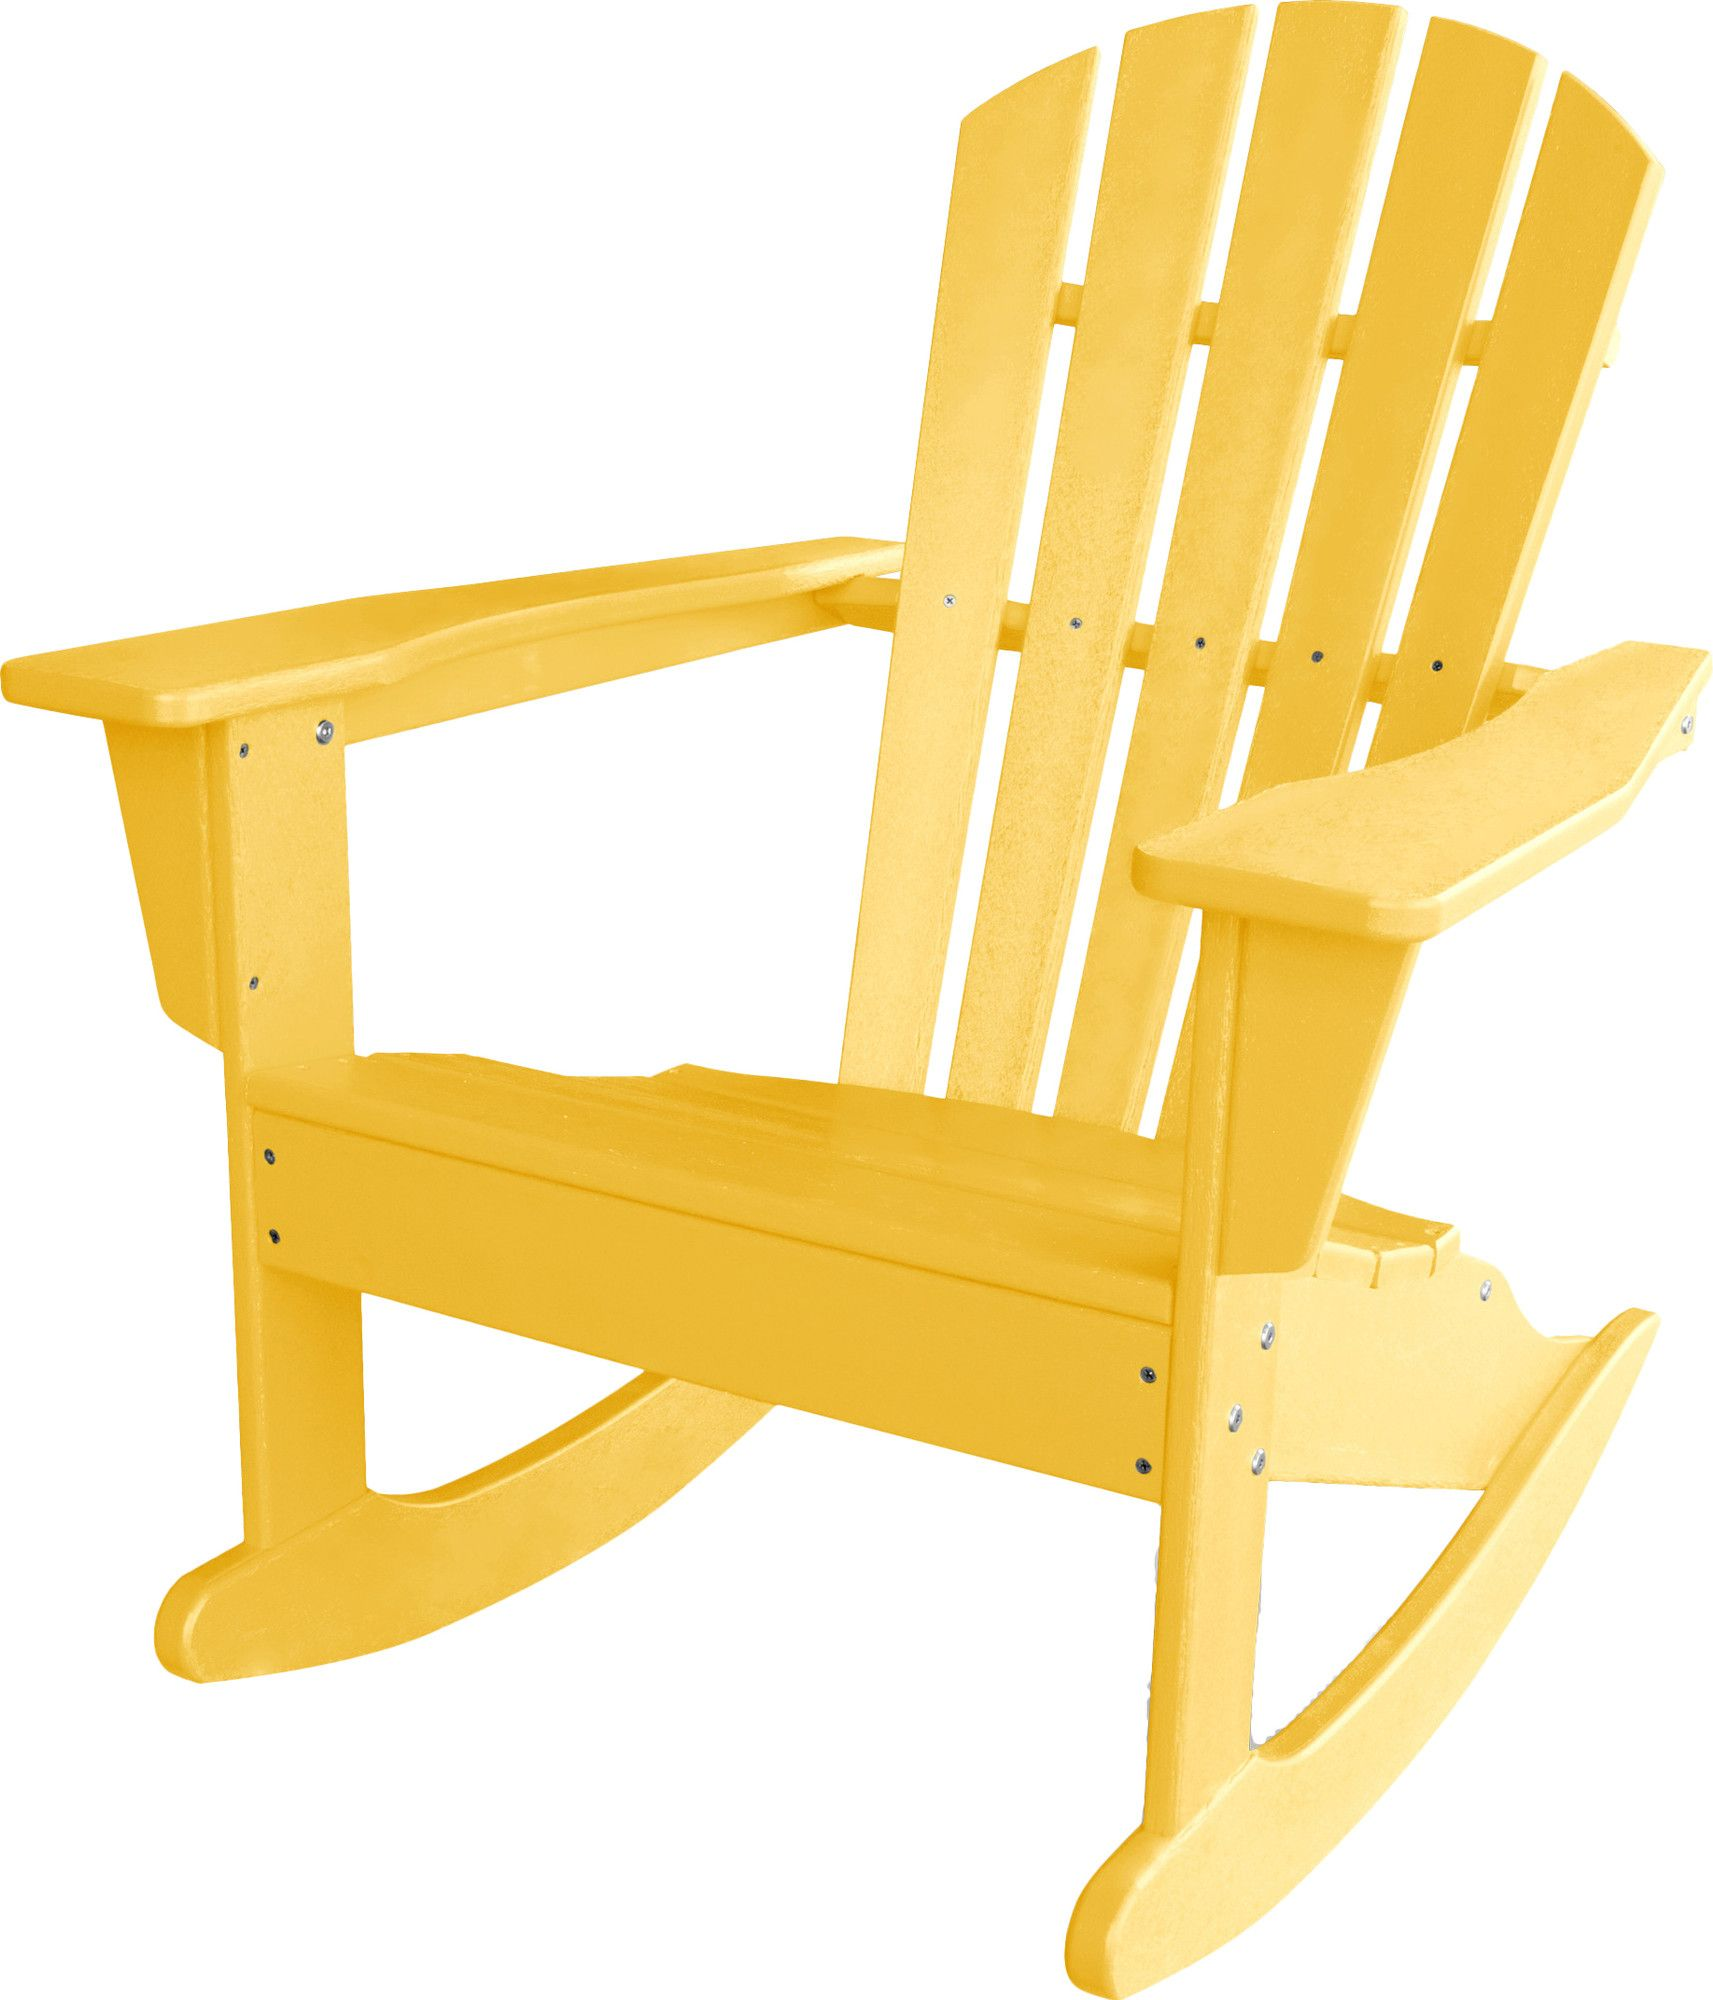 South beach adirondack rocker chair products pinterest products